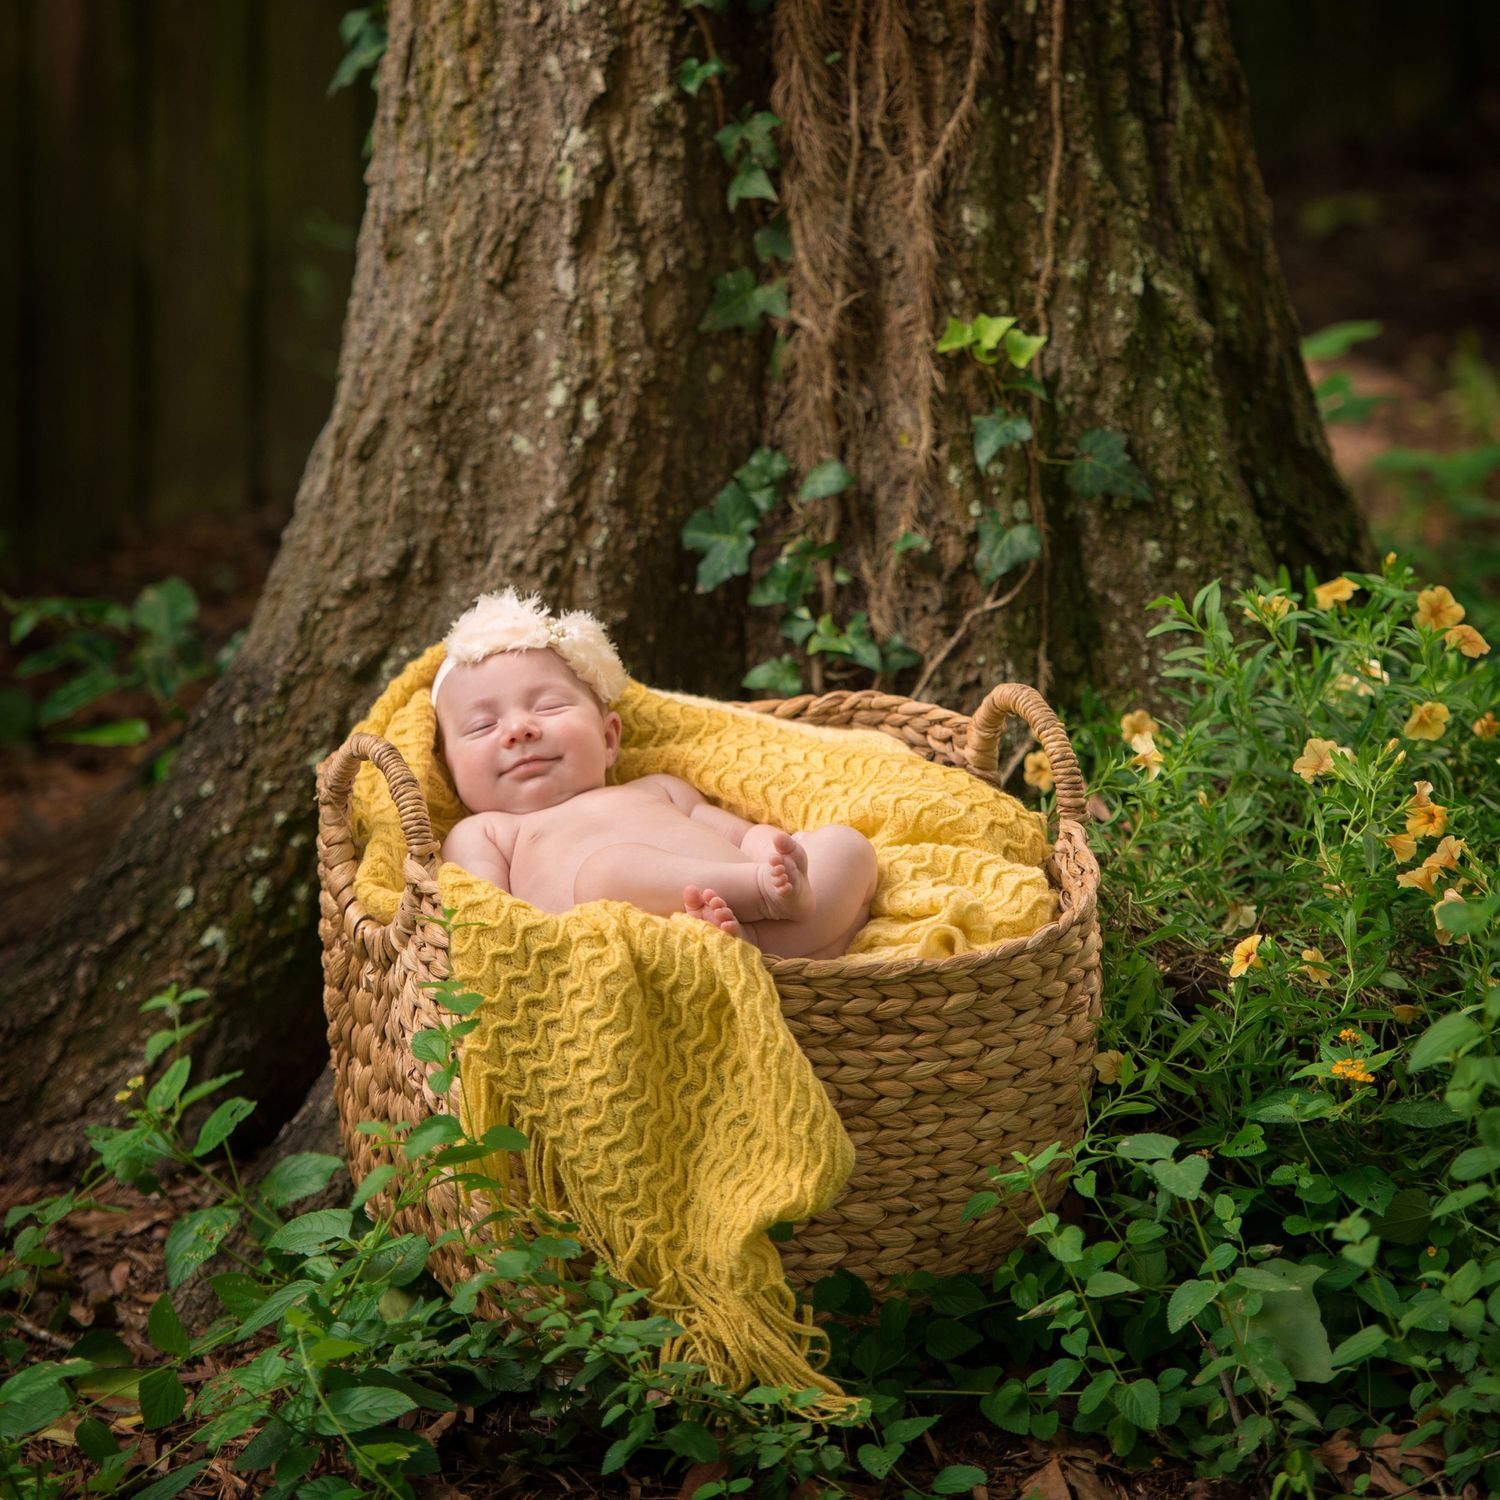 Newborn portrait of baby girl in a basket with yellow blanket, oak trees  and flowers